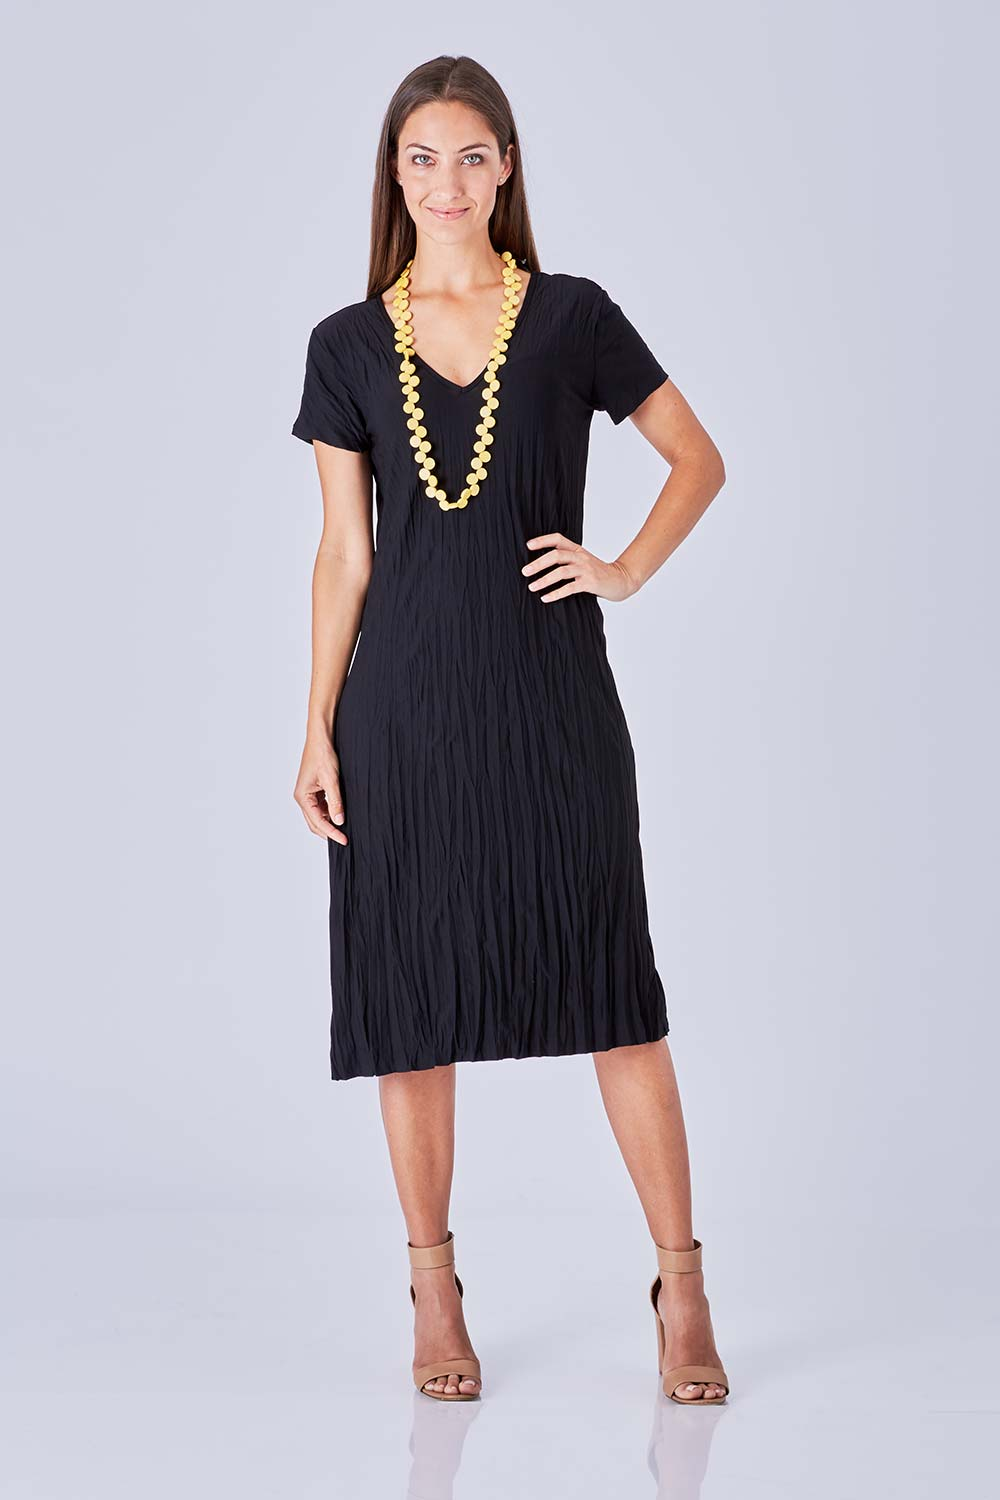 Simple  Knee Length Dresses For Women Are Fabulous These Dresses Are Perfect